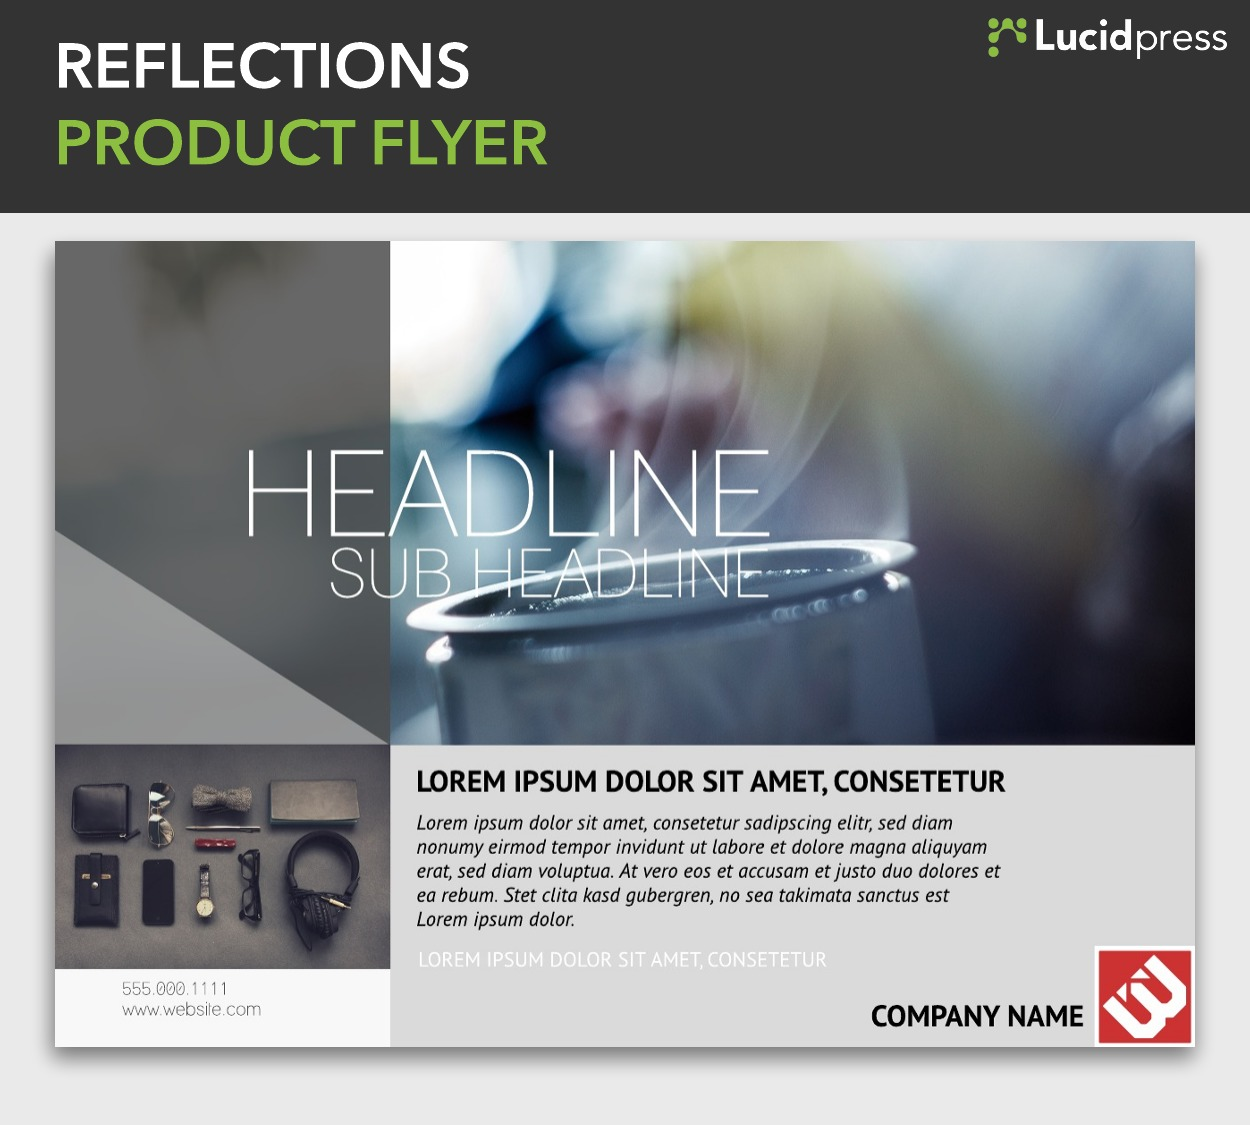 Reflections Product Flyer